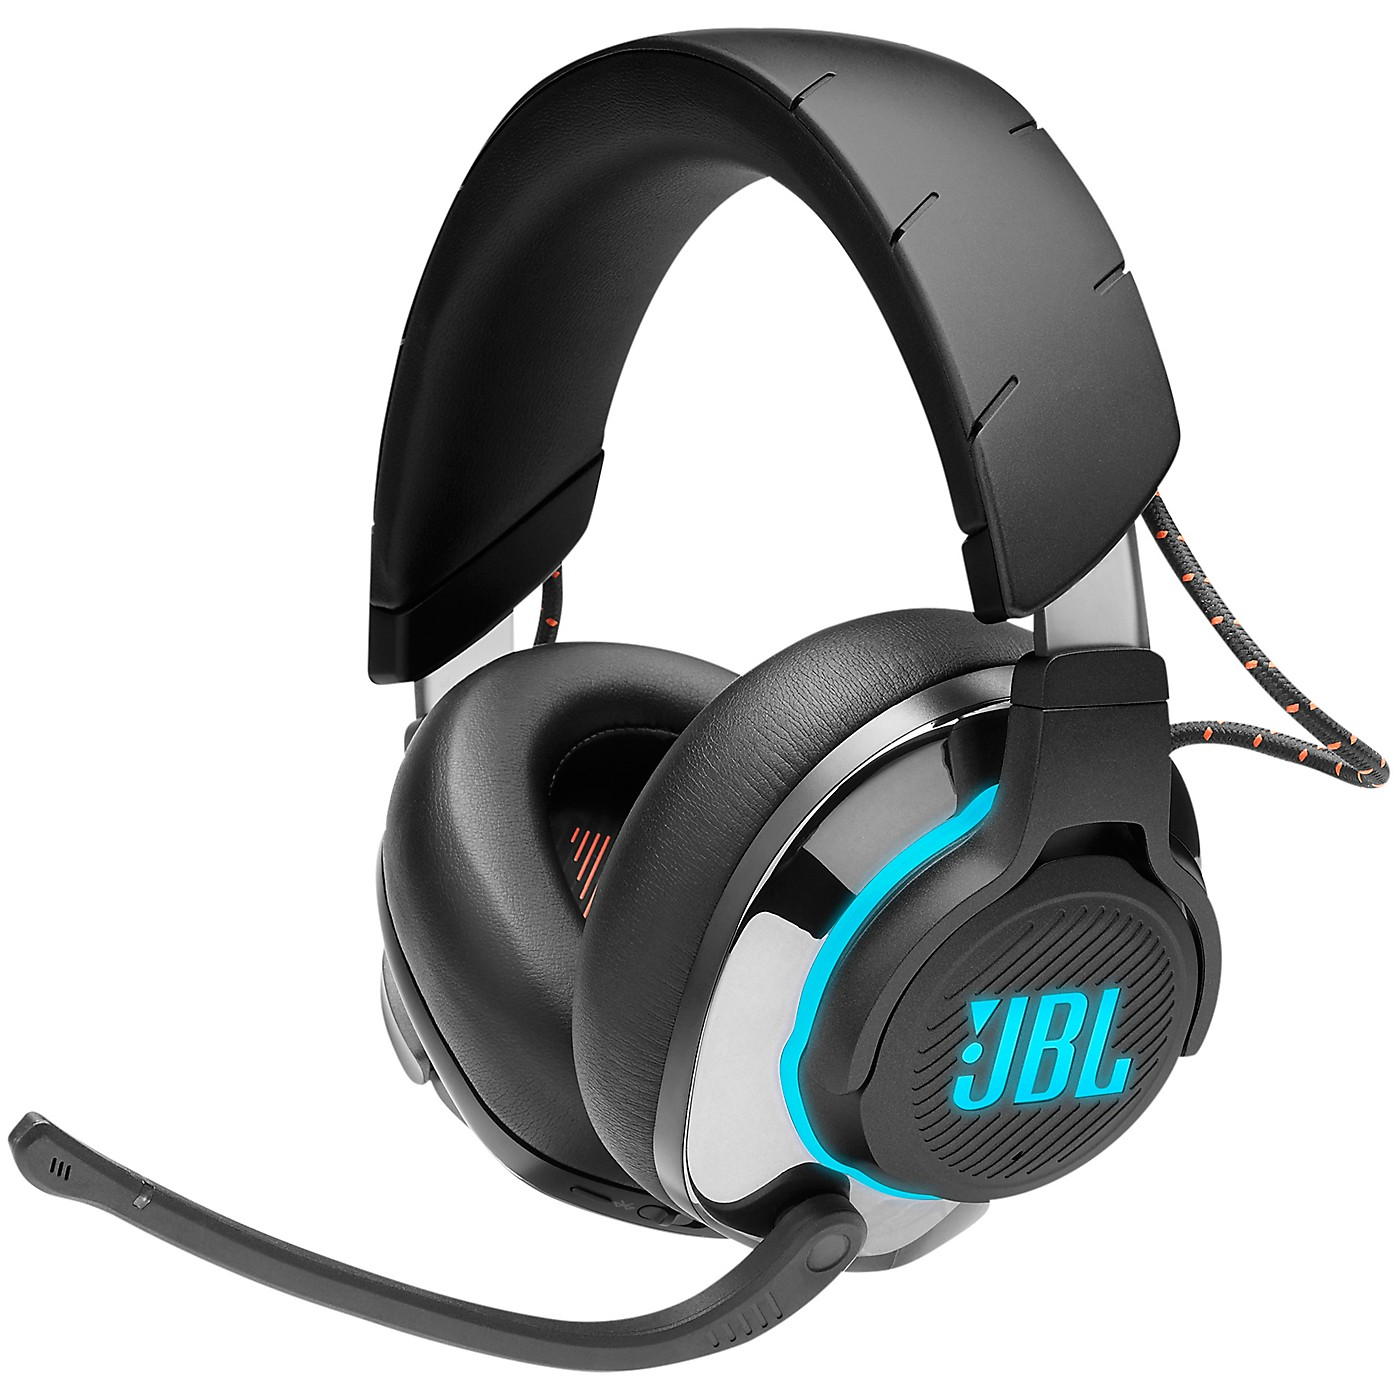 JBL Quantum 800 Gaming - 2.4 Ghz + BT Wireless Noise Cancelling Over-Ear Headset thumbnail